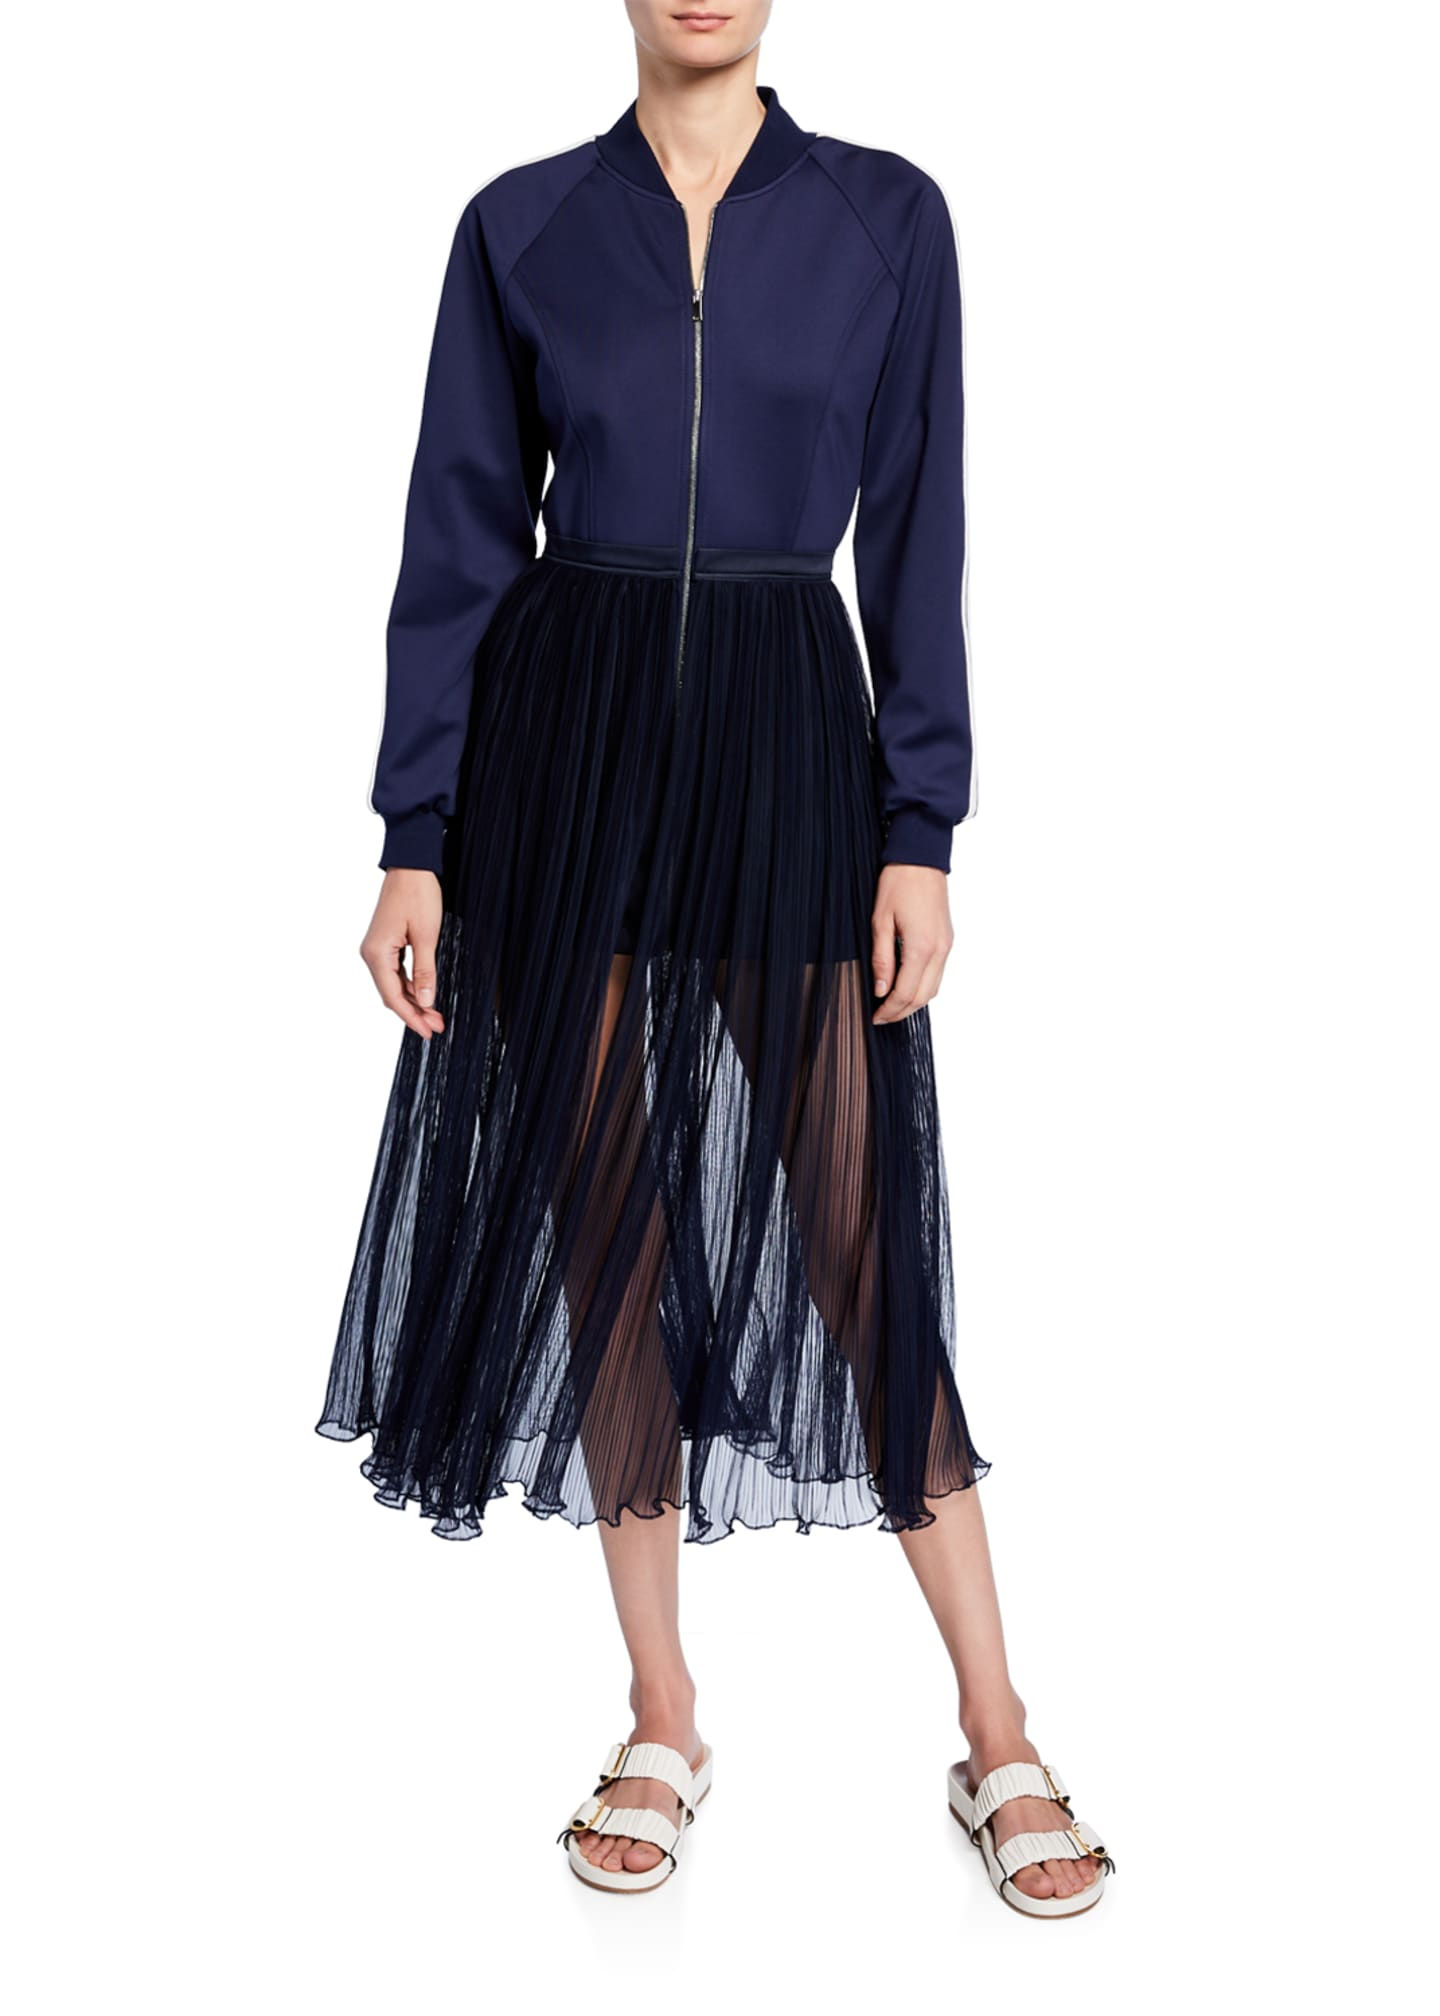 BESFXXK Track-Top Fringe-Skirt Dress